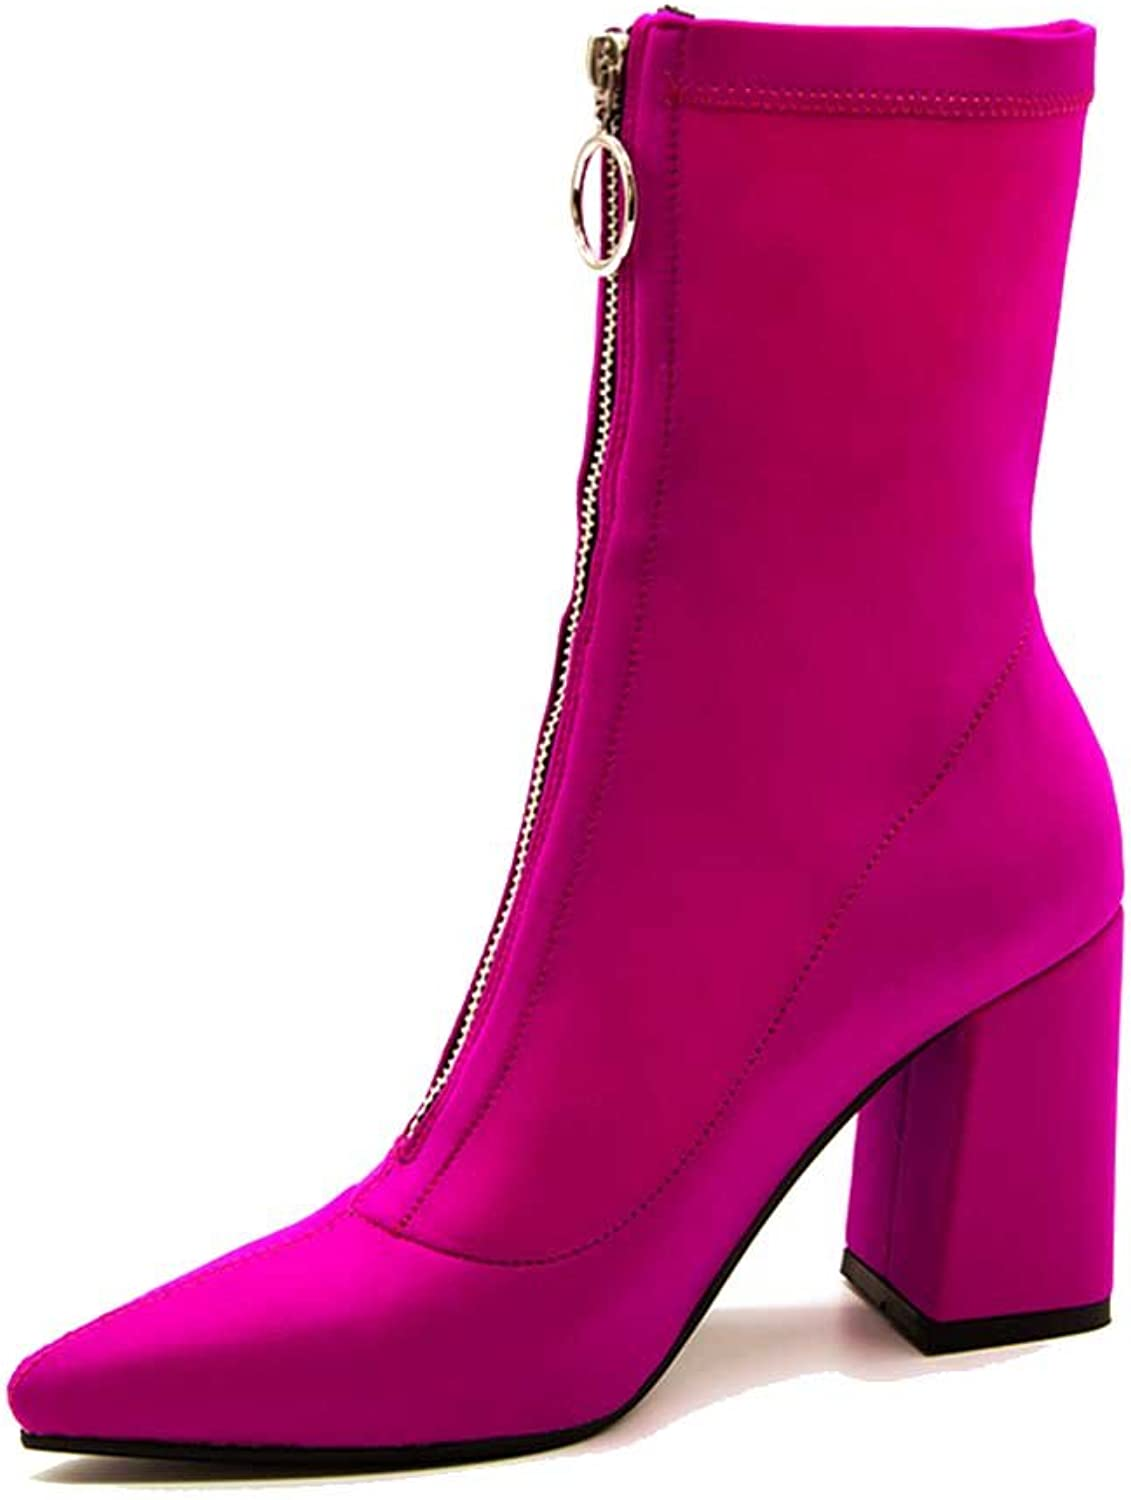 A-BUYBEA Women's Casual Pointed Toe 3.54  Chunky High Heel Spandex Lycra Front Zipper Boots shoes 4.5-10.5